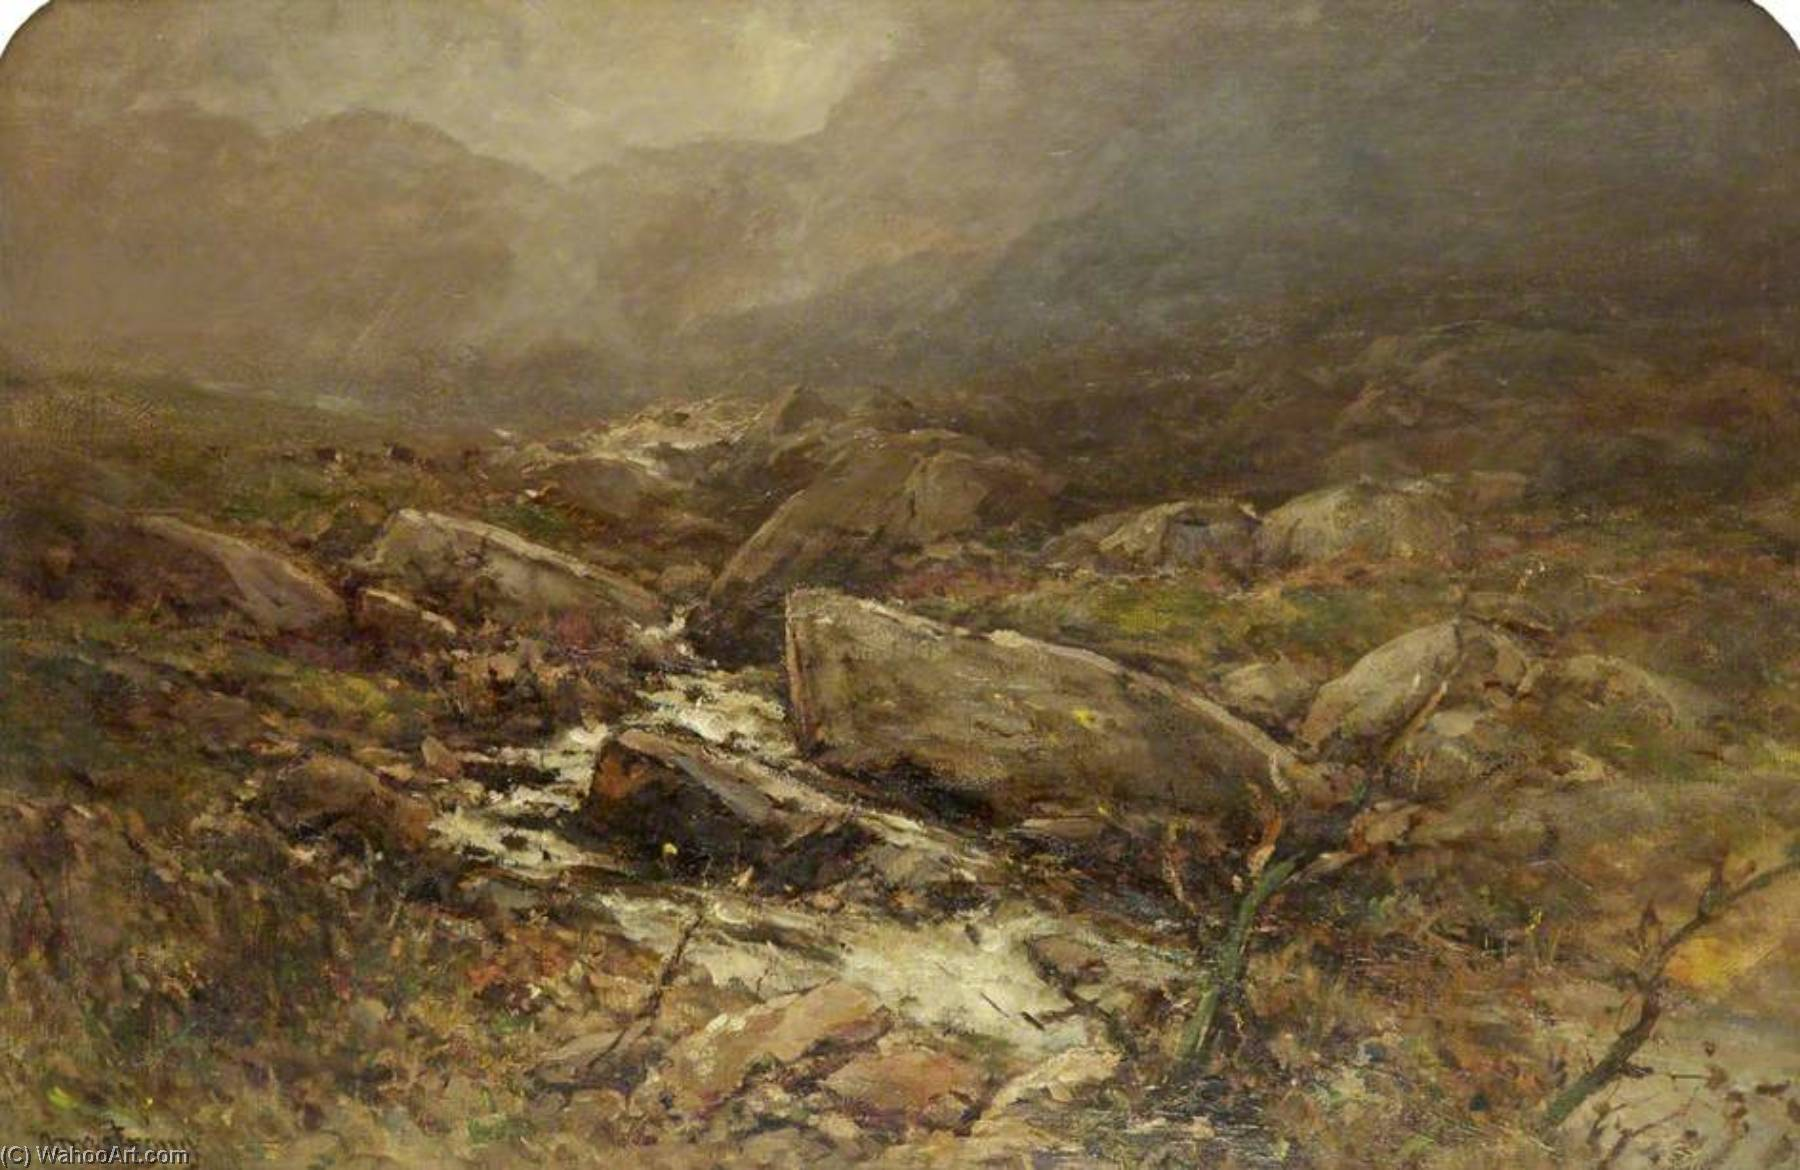 Wikioo.org - The Encyclopedia of Fine Arts - Painting, Artwork by Francis Abel William Taylor Armstrong - A Mountainous Landscape with Trees and Stream